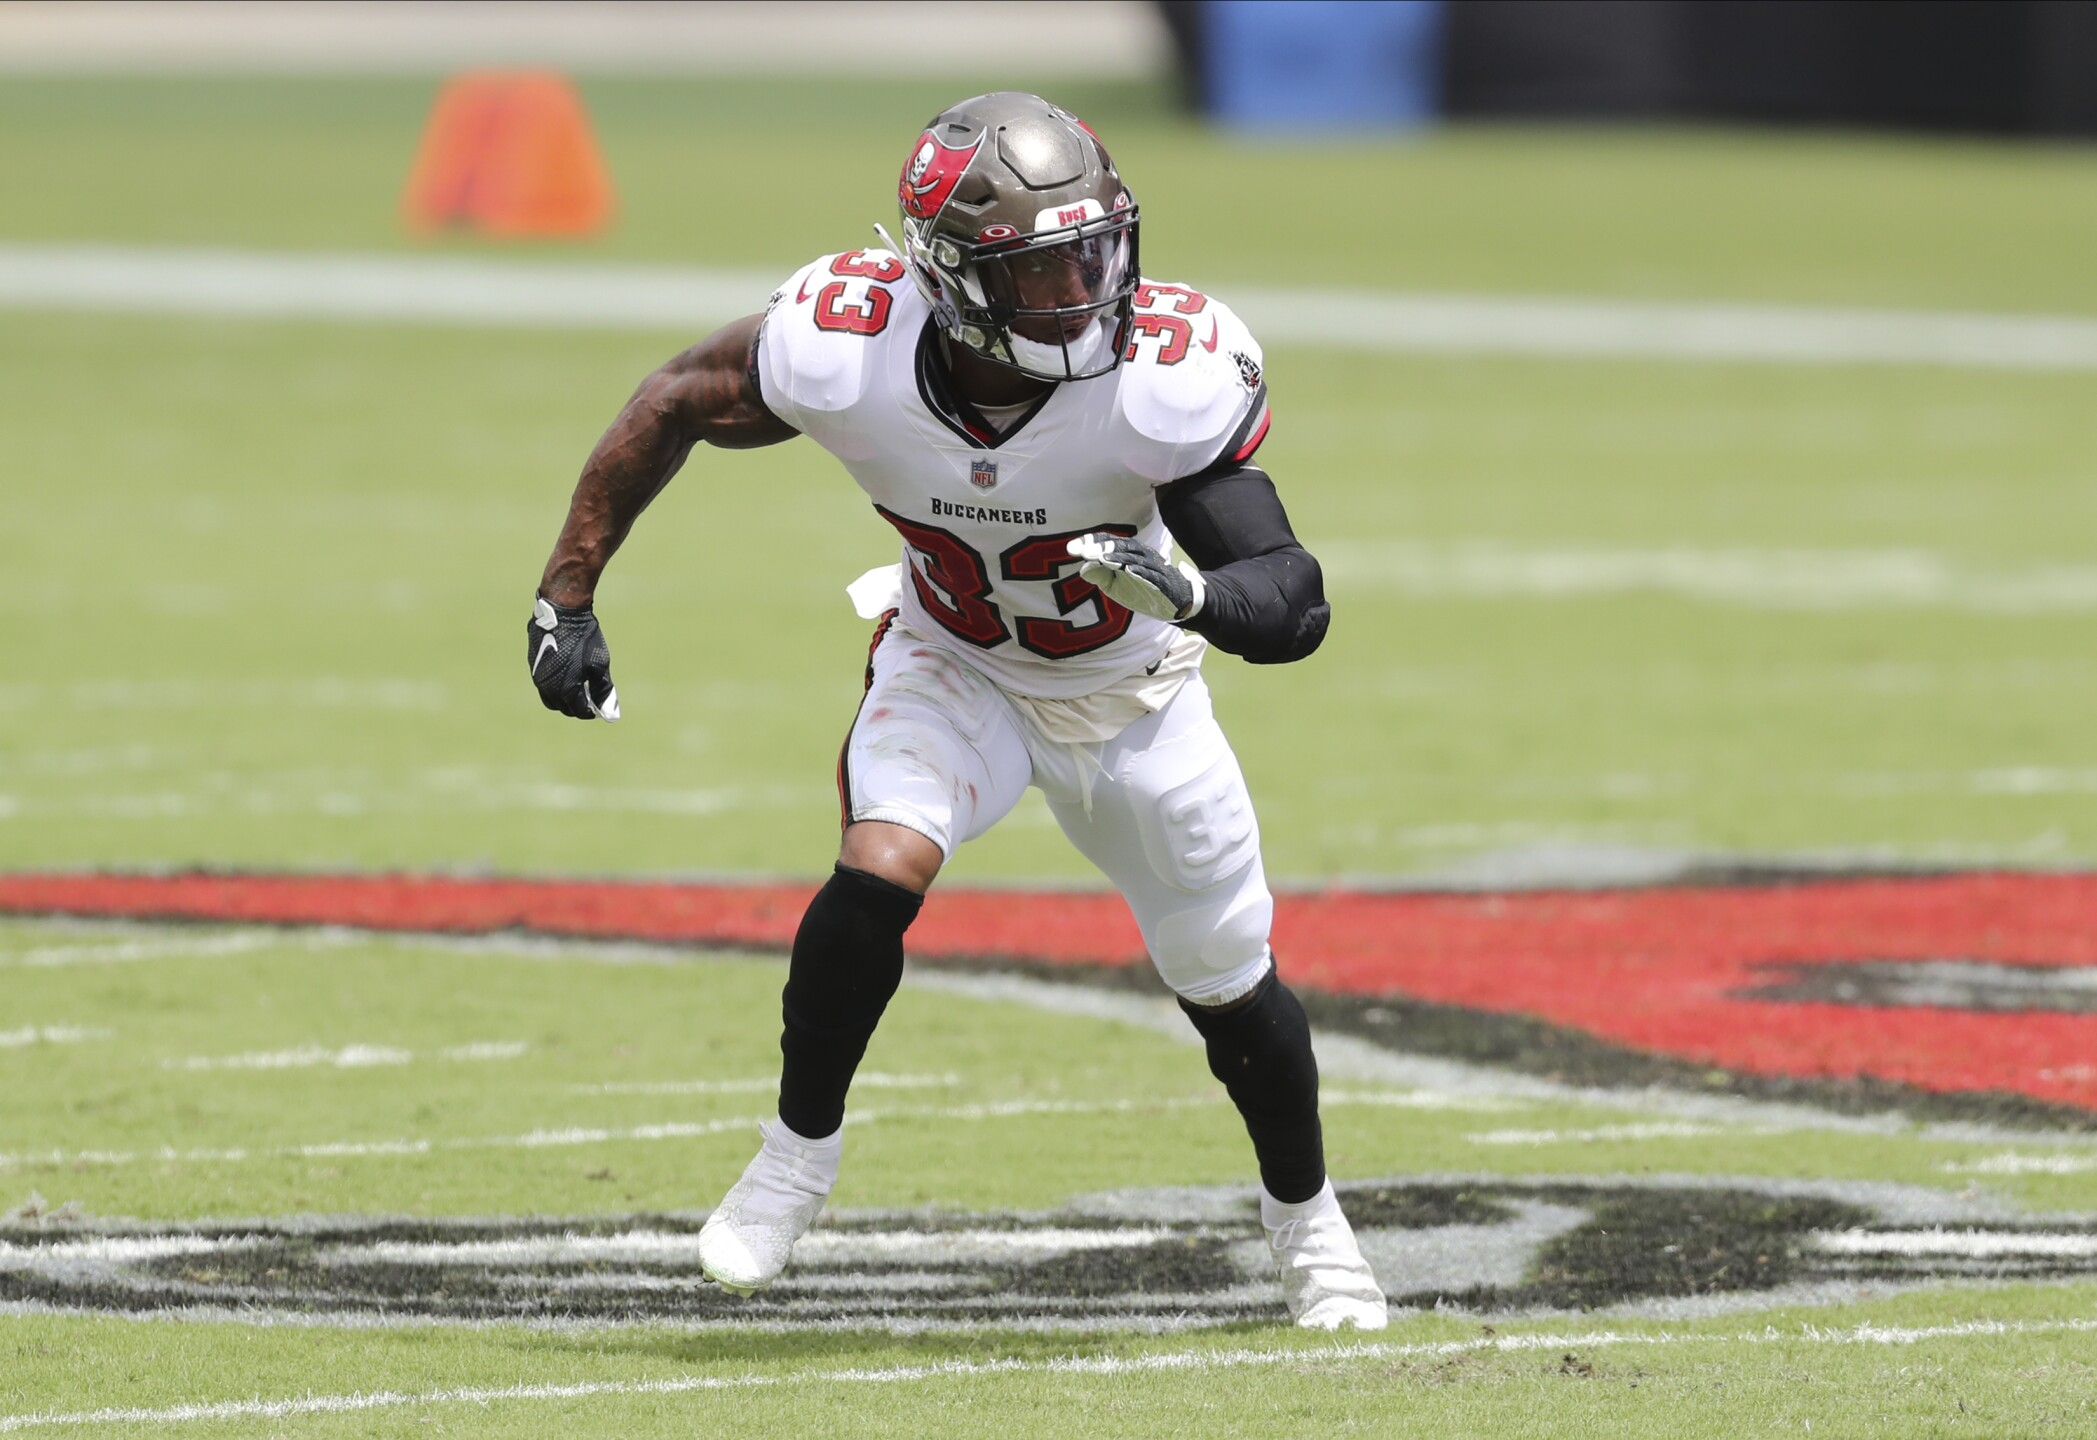 ap-images-buccaneers-panthers-game-sept-20-2020-3